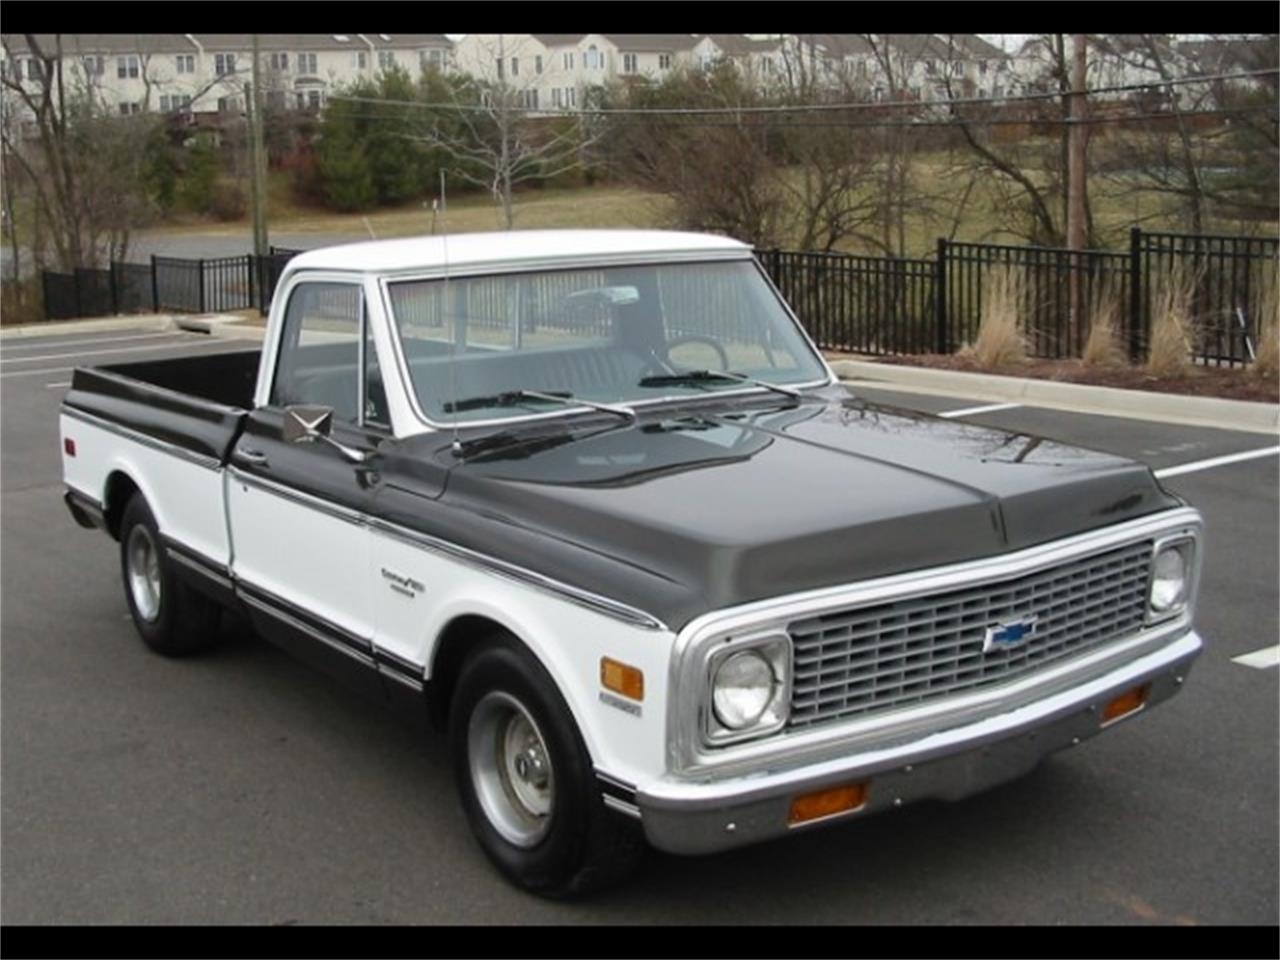 Large Picture of '72 Chevrolet C10 - $25,500.00 Offered by Champion Pre-Owned Classics - OKLJ